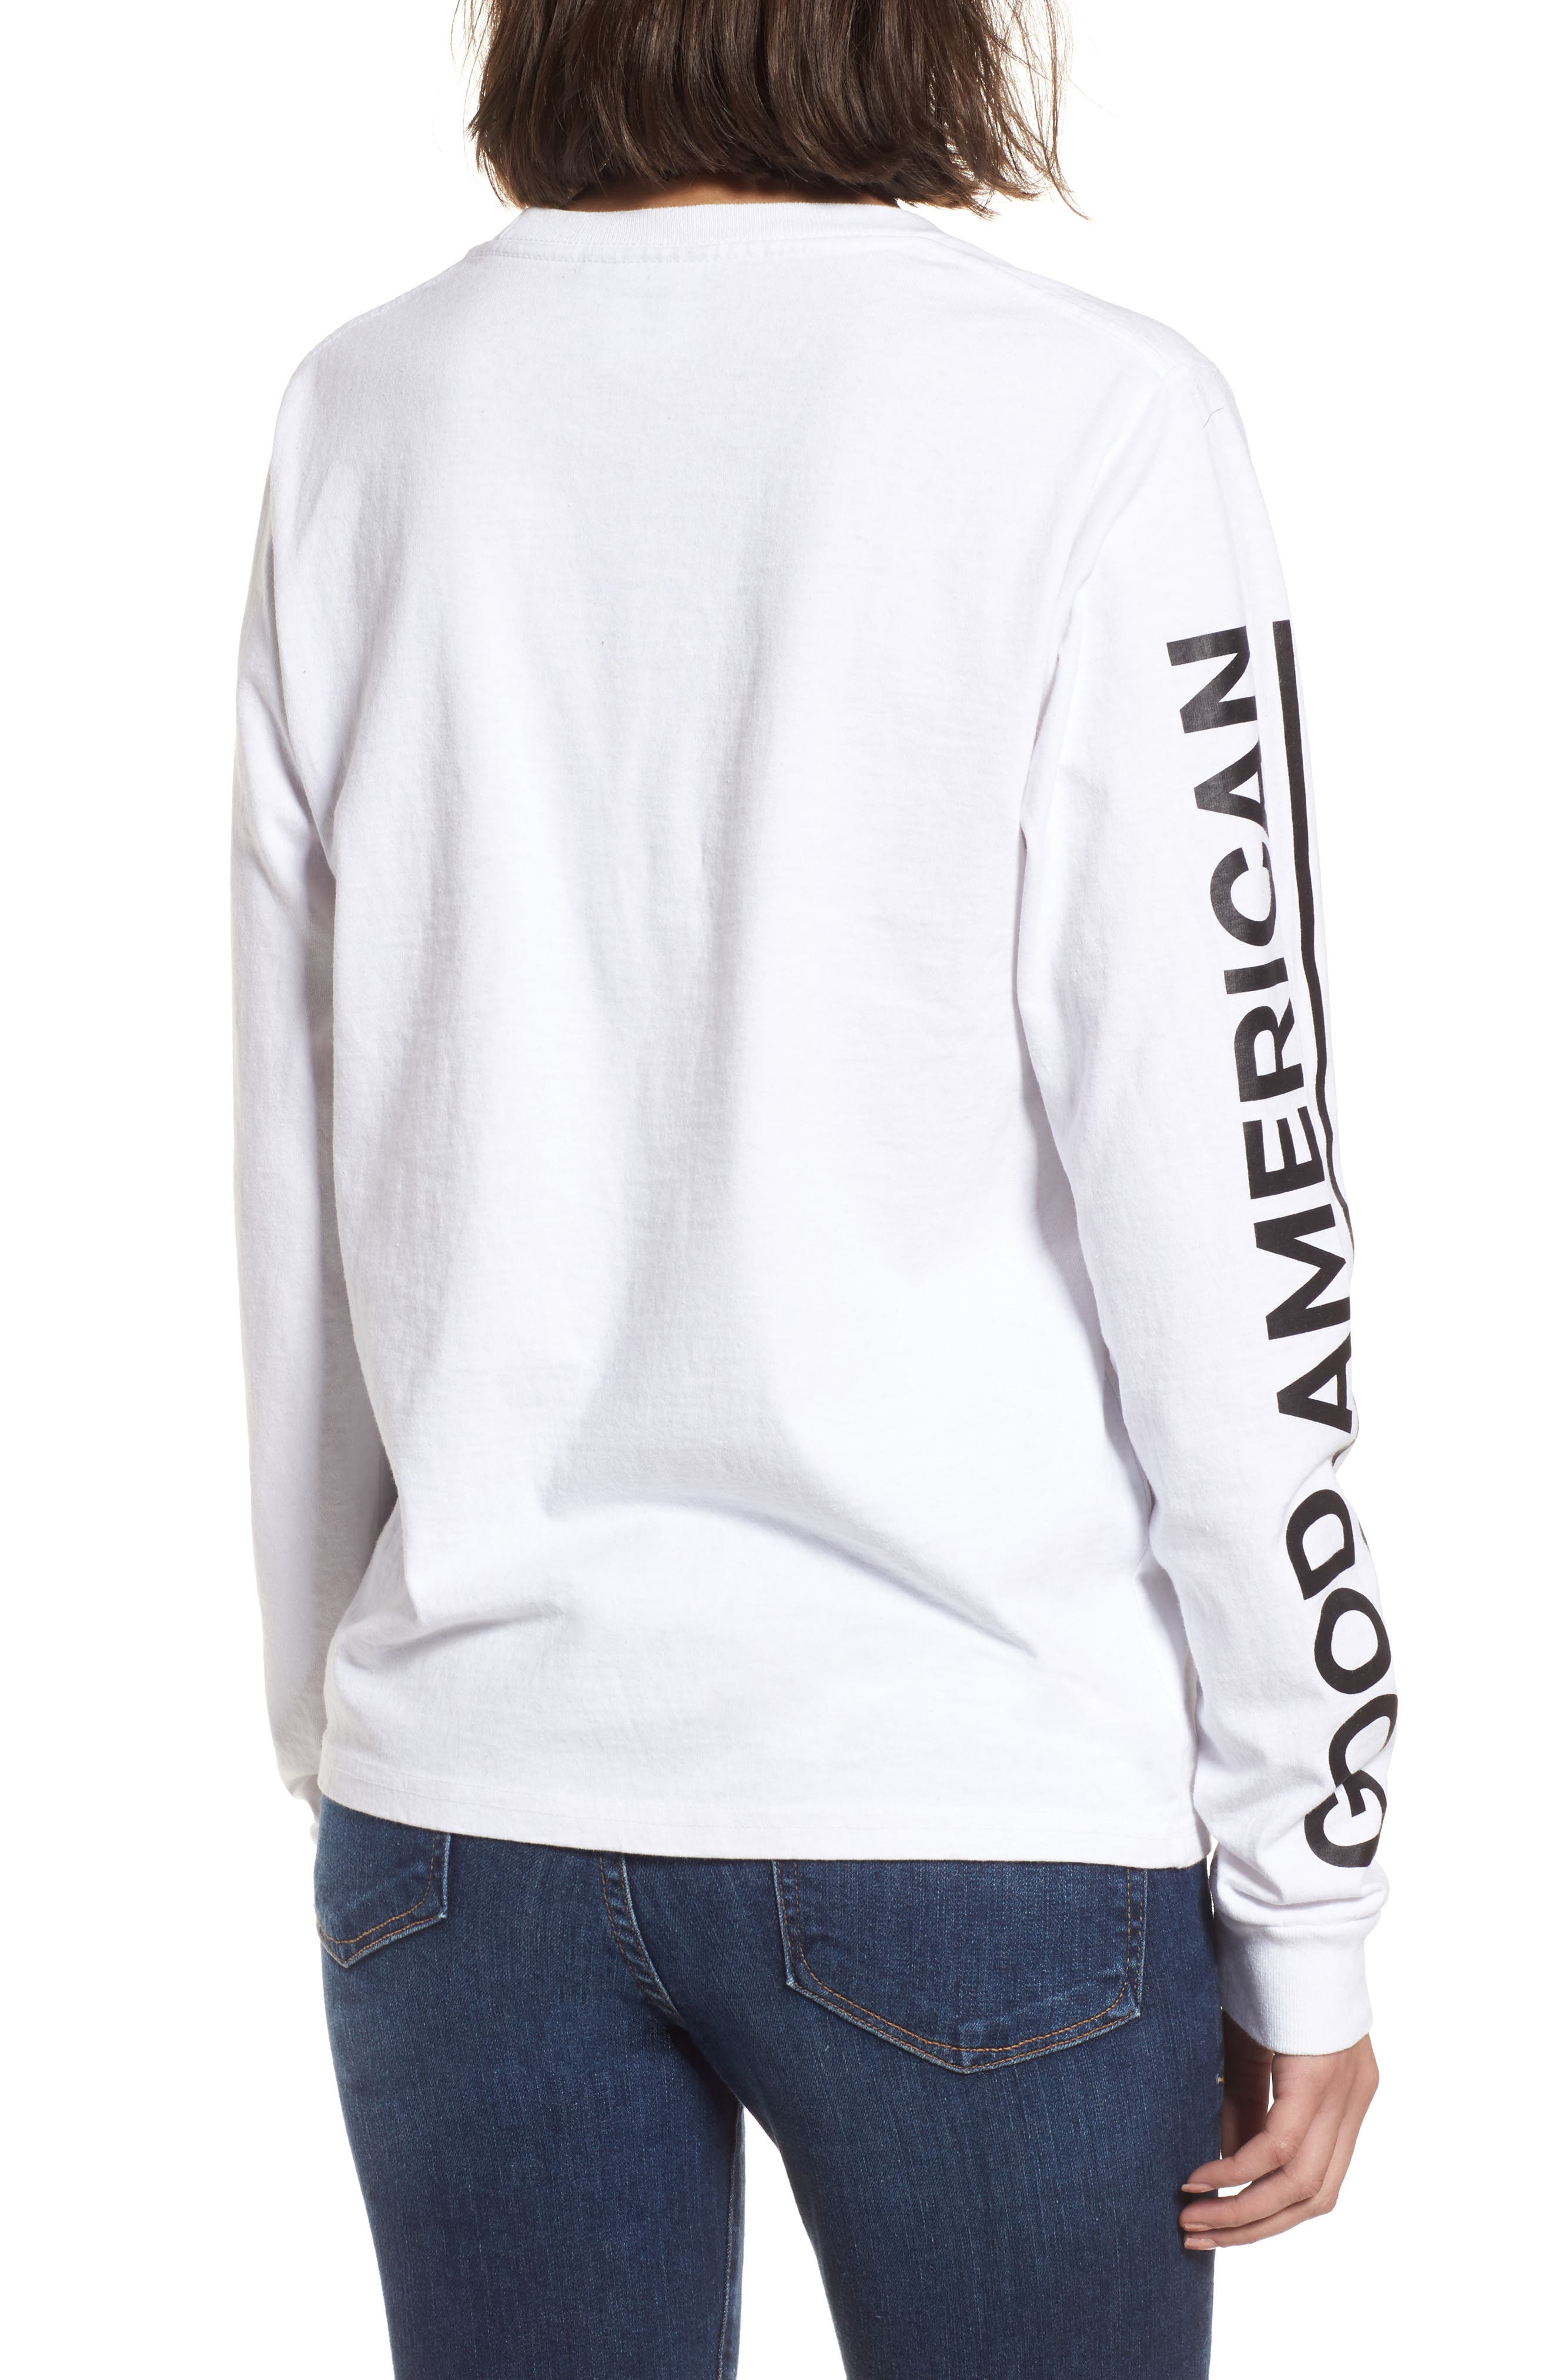 Goodies Long Sleeve Graphic Tee,                             Alternate thumbnail 2, color,